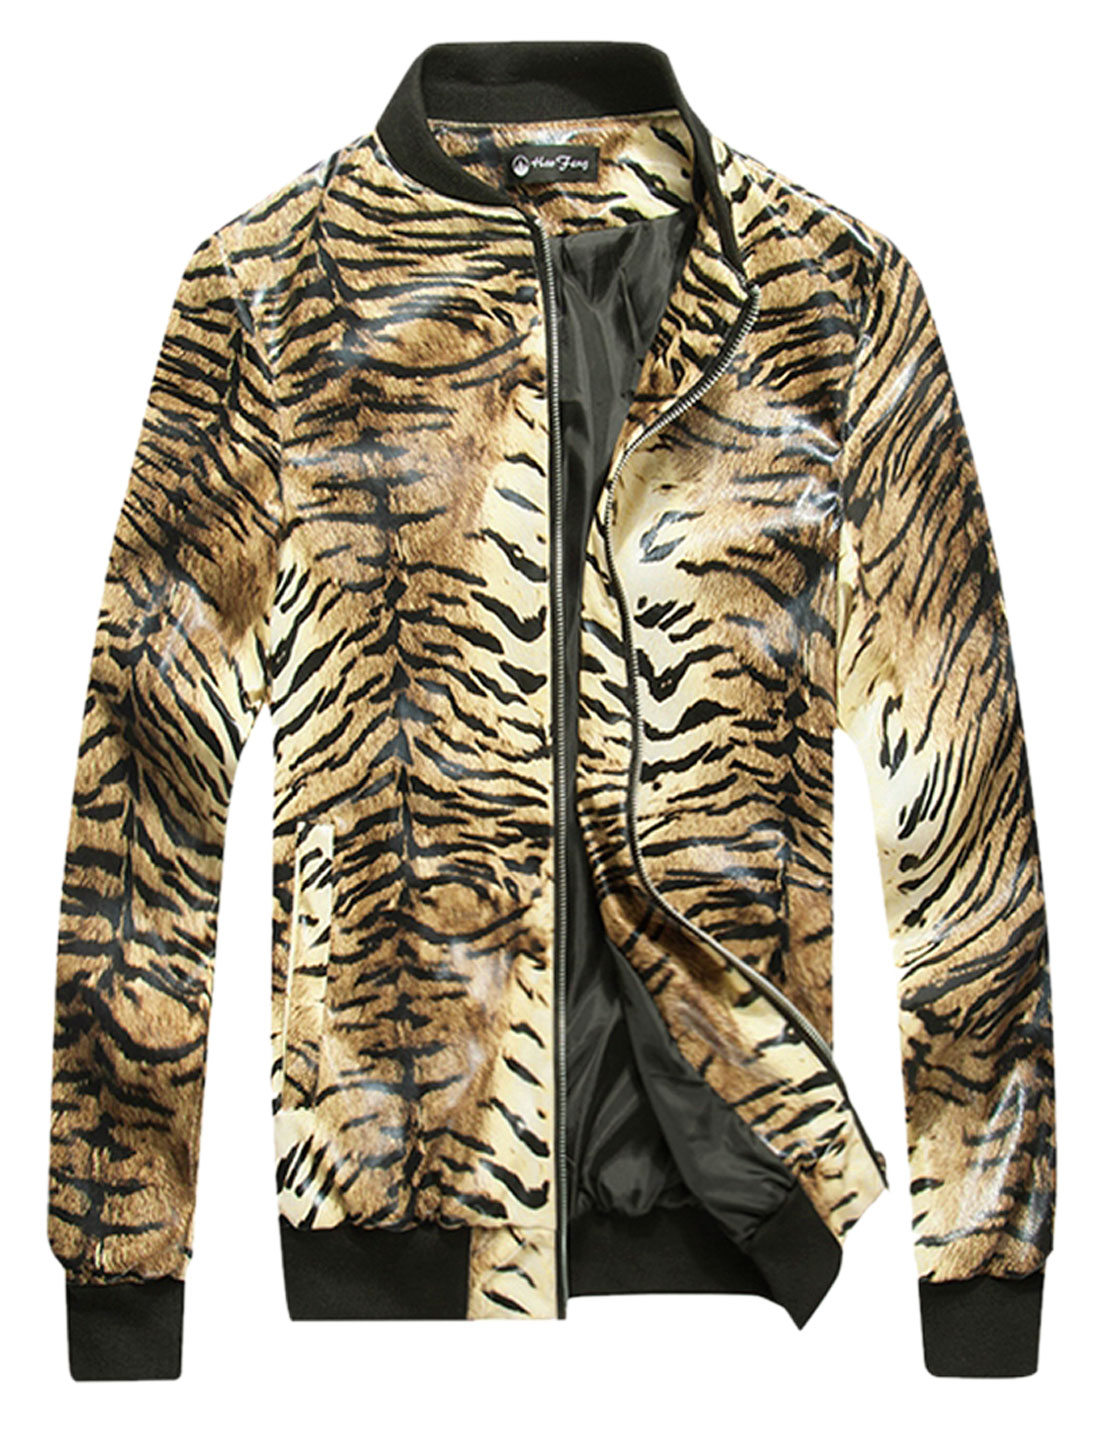 Men Tiger Prints Zip Up Slant Pockets Imitation Leather Jacket Beige Brown M